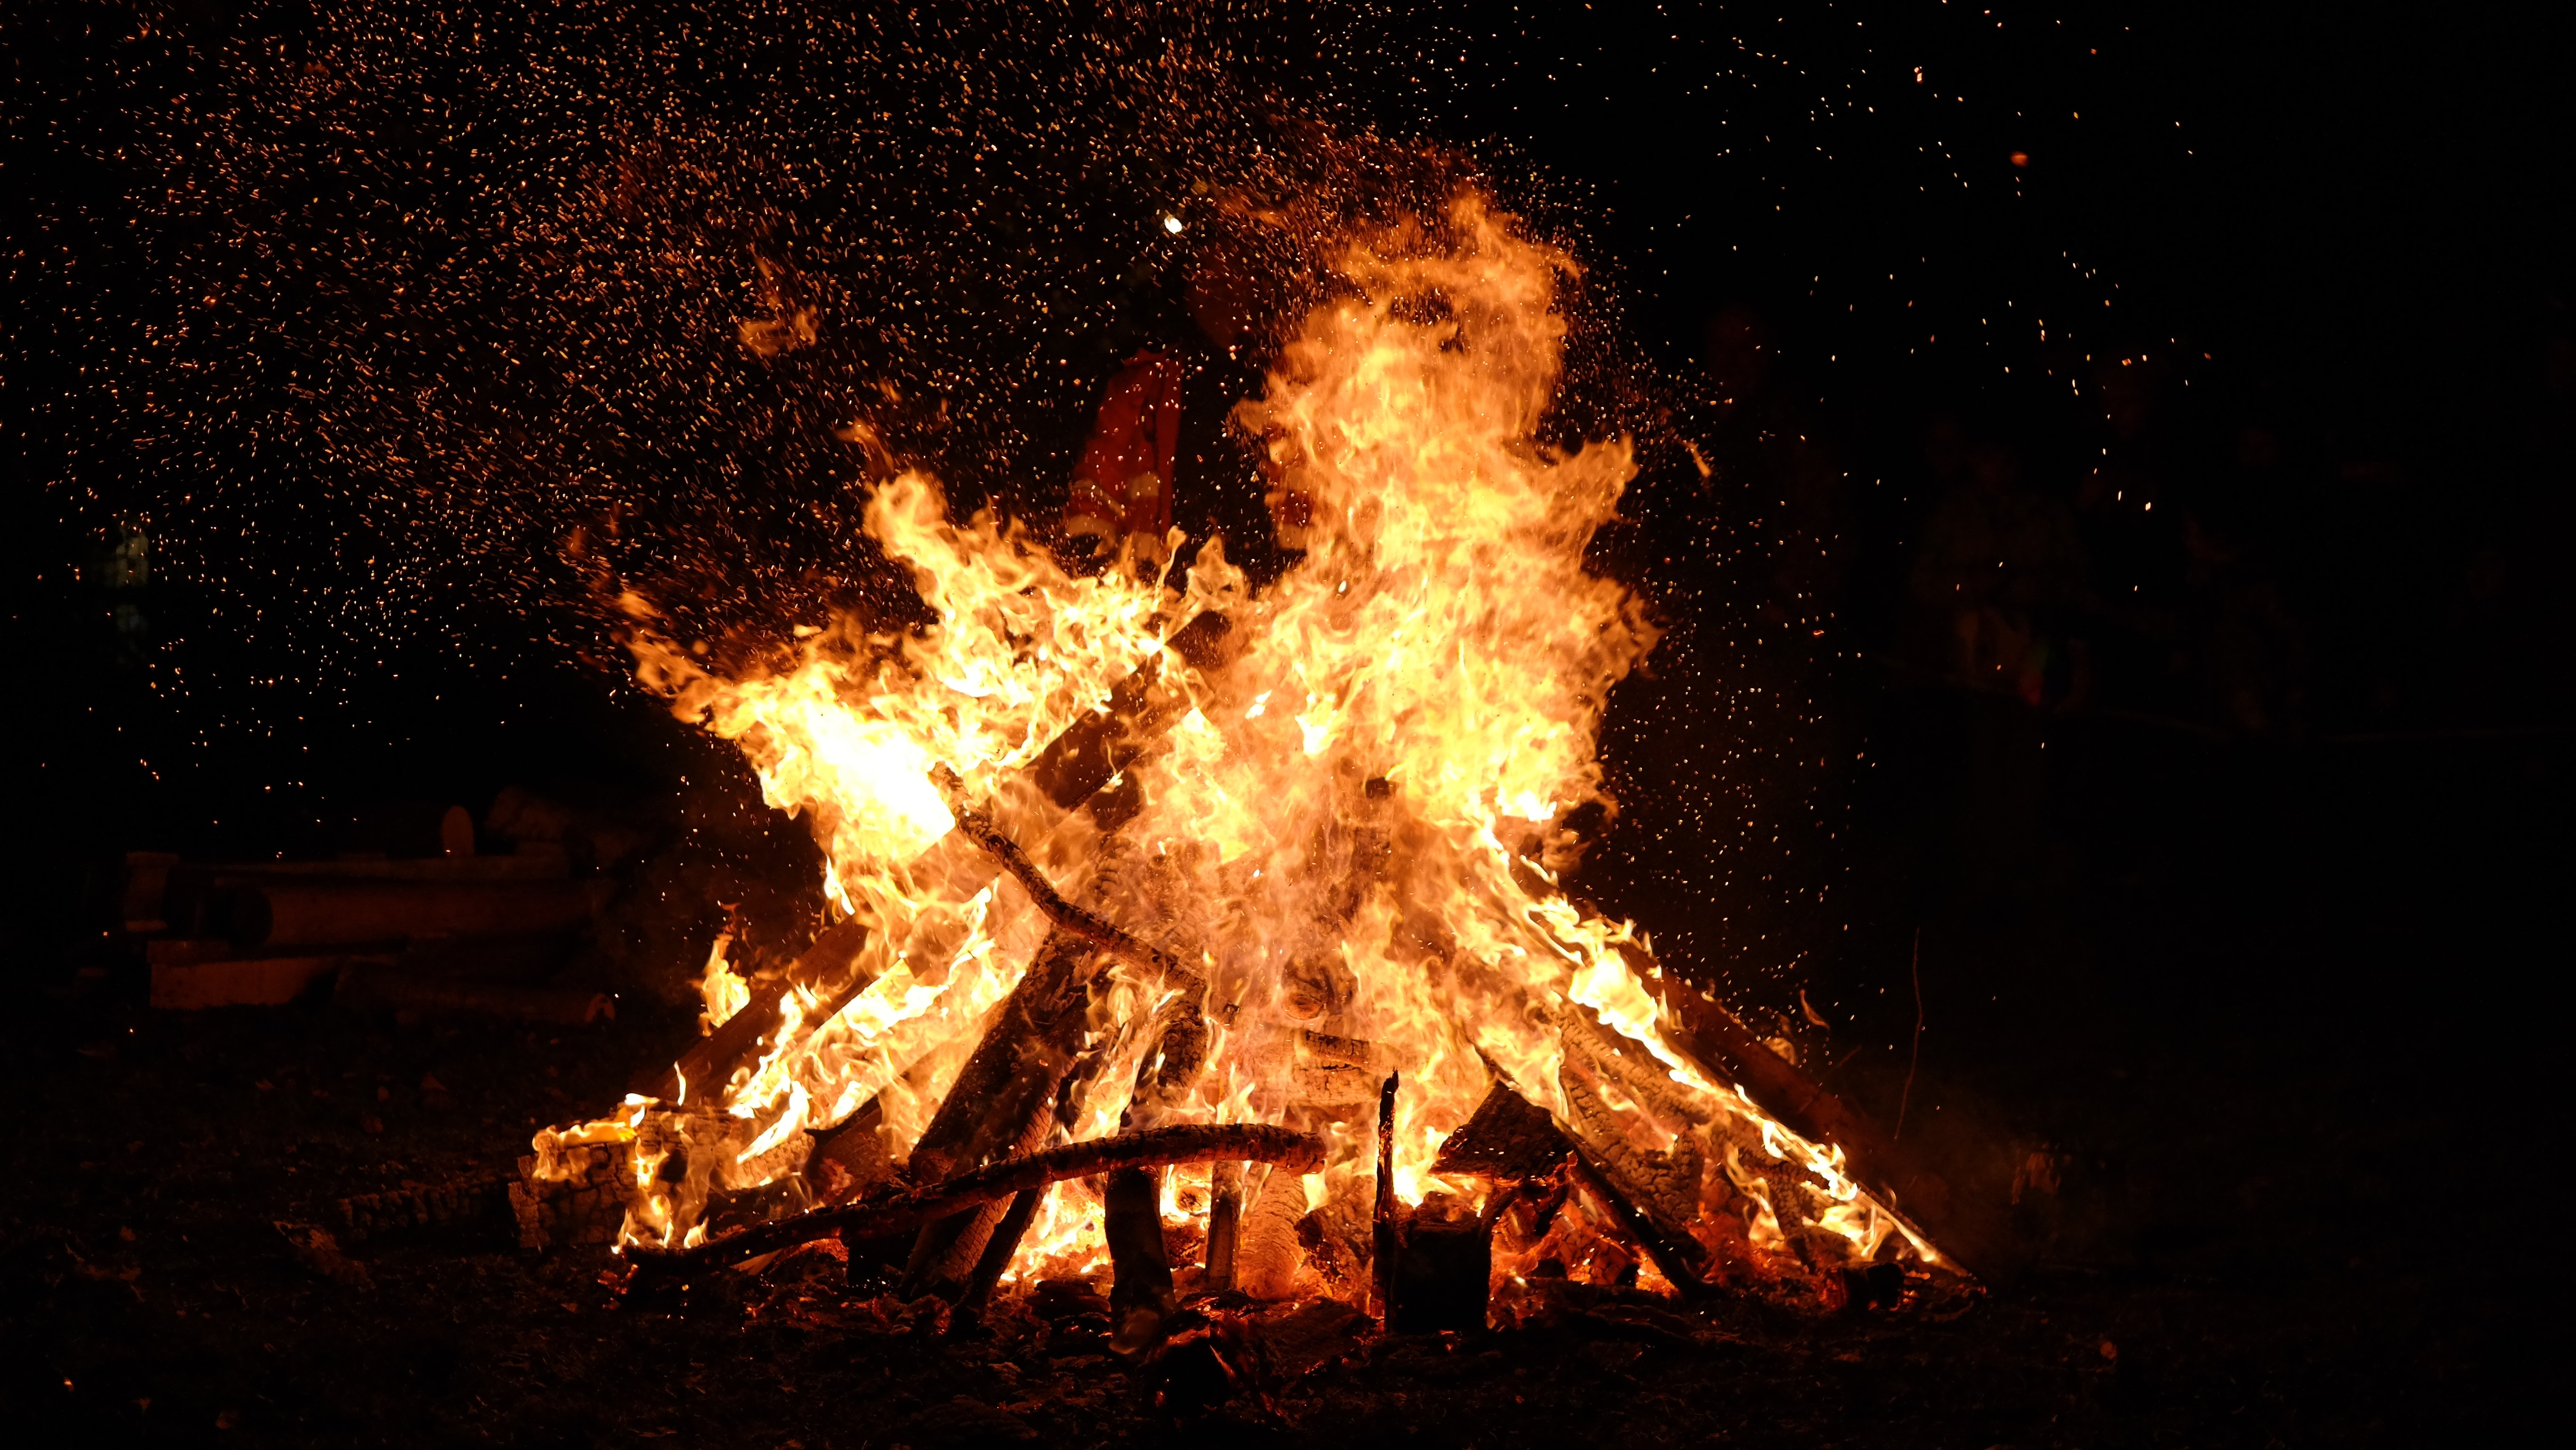 bonfire-burn-burning-776113